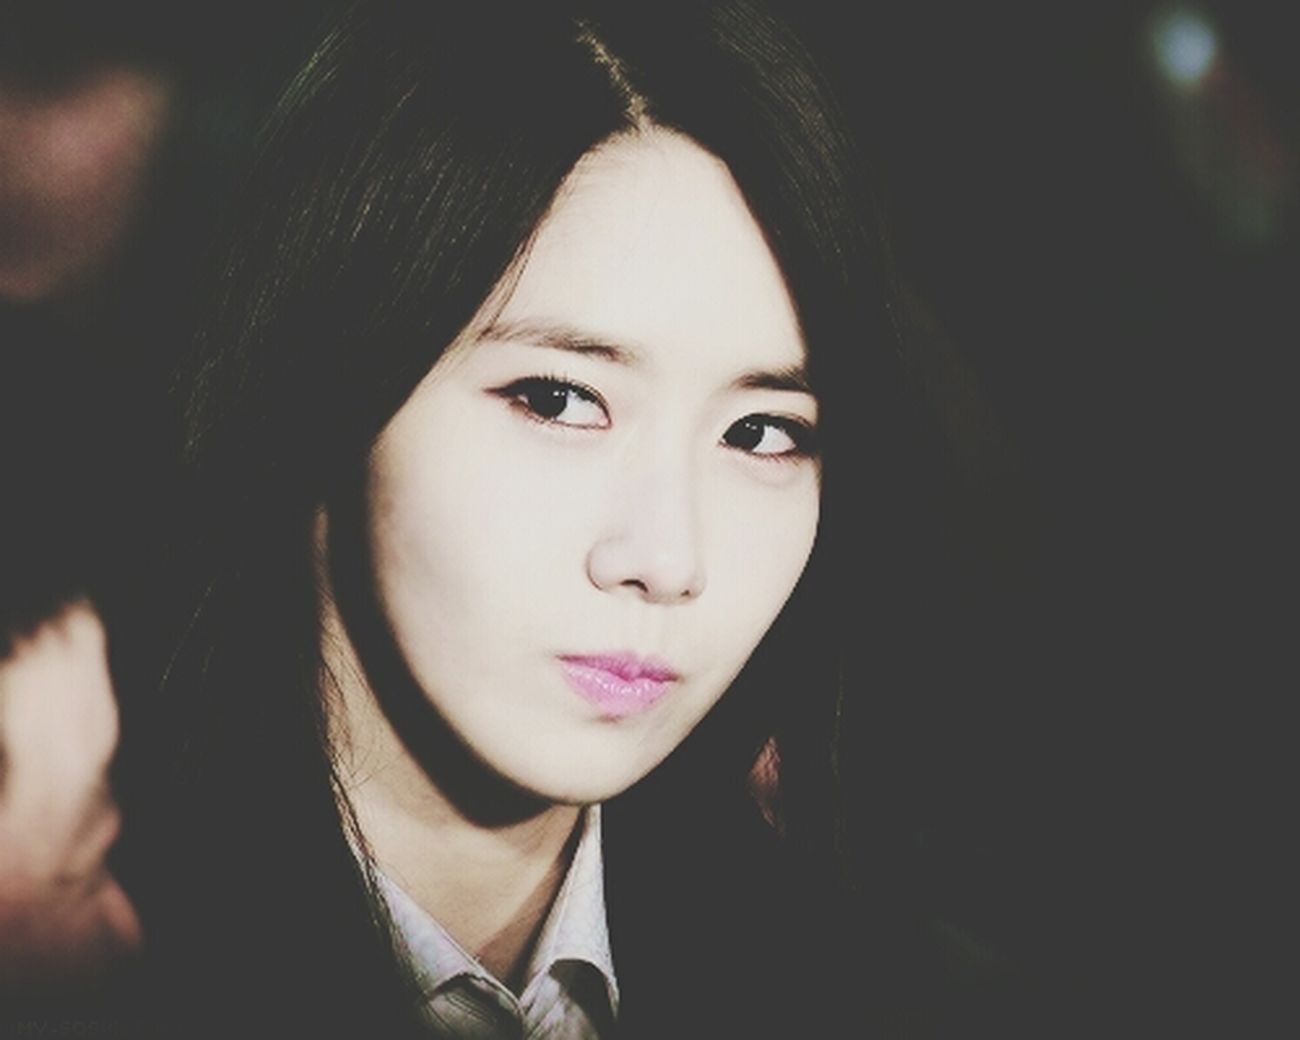 Yoona Girls Generation Imyoona